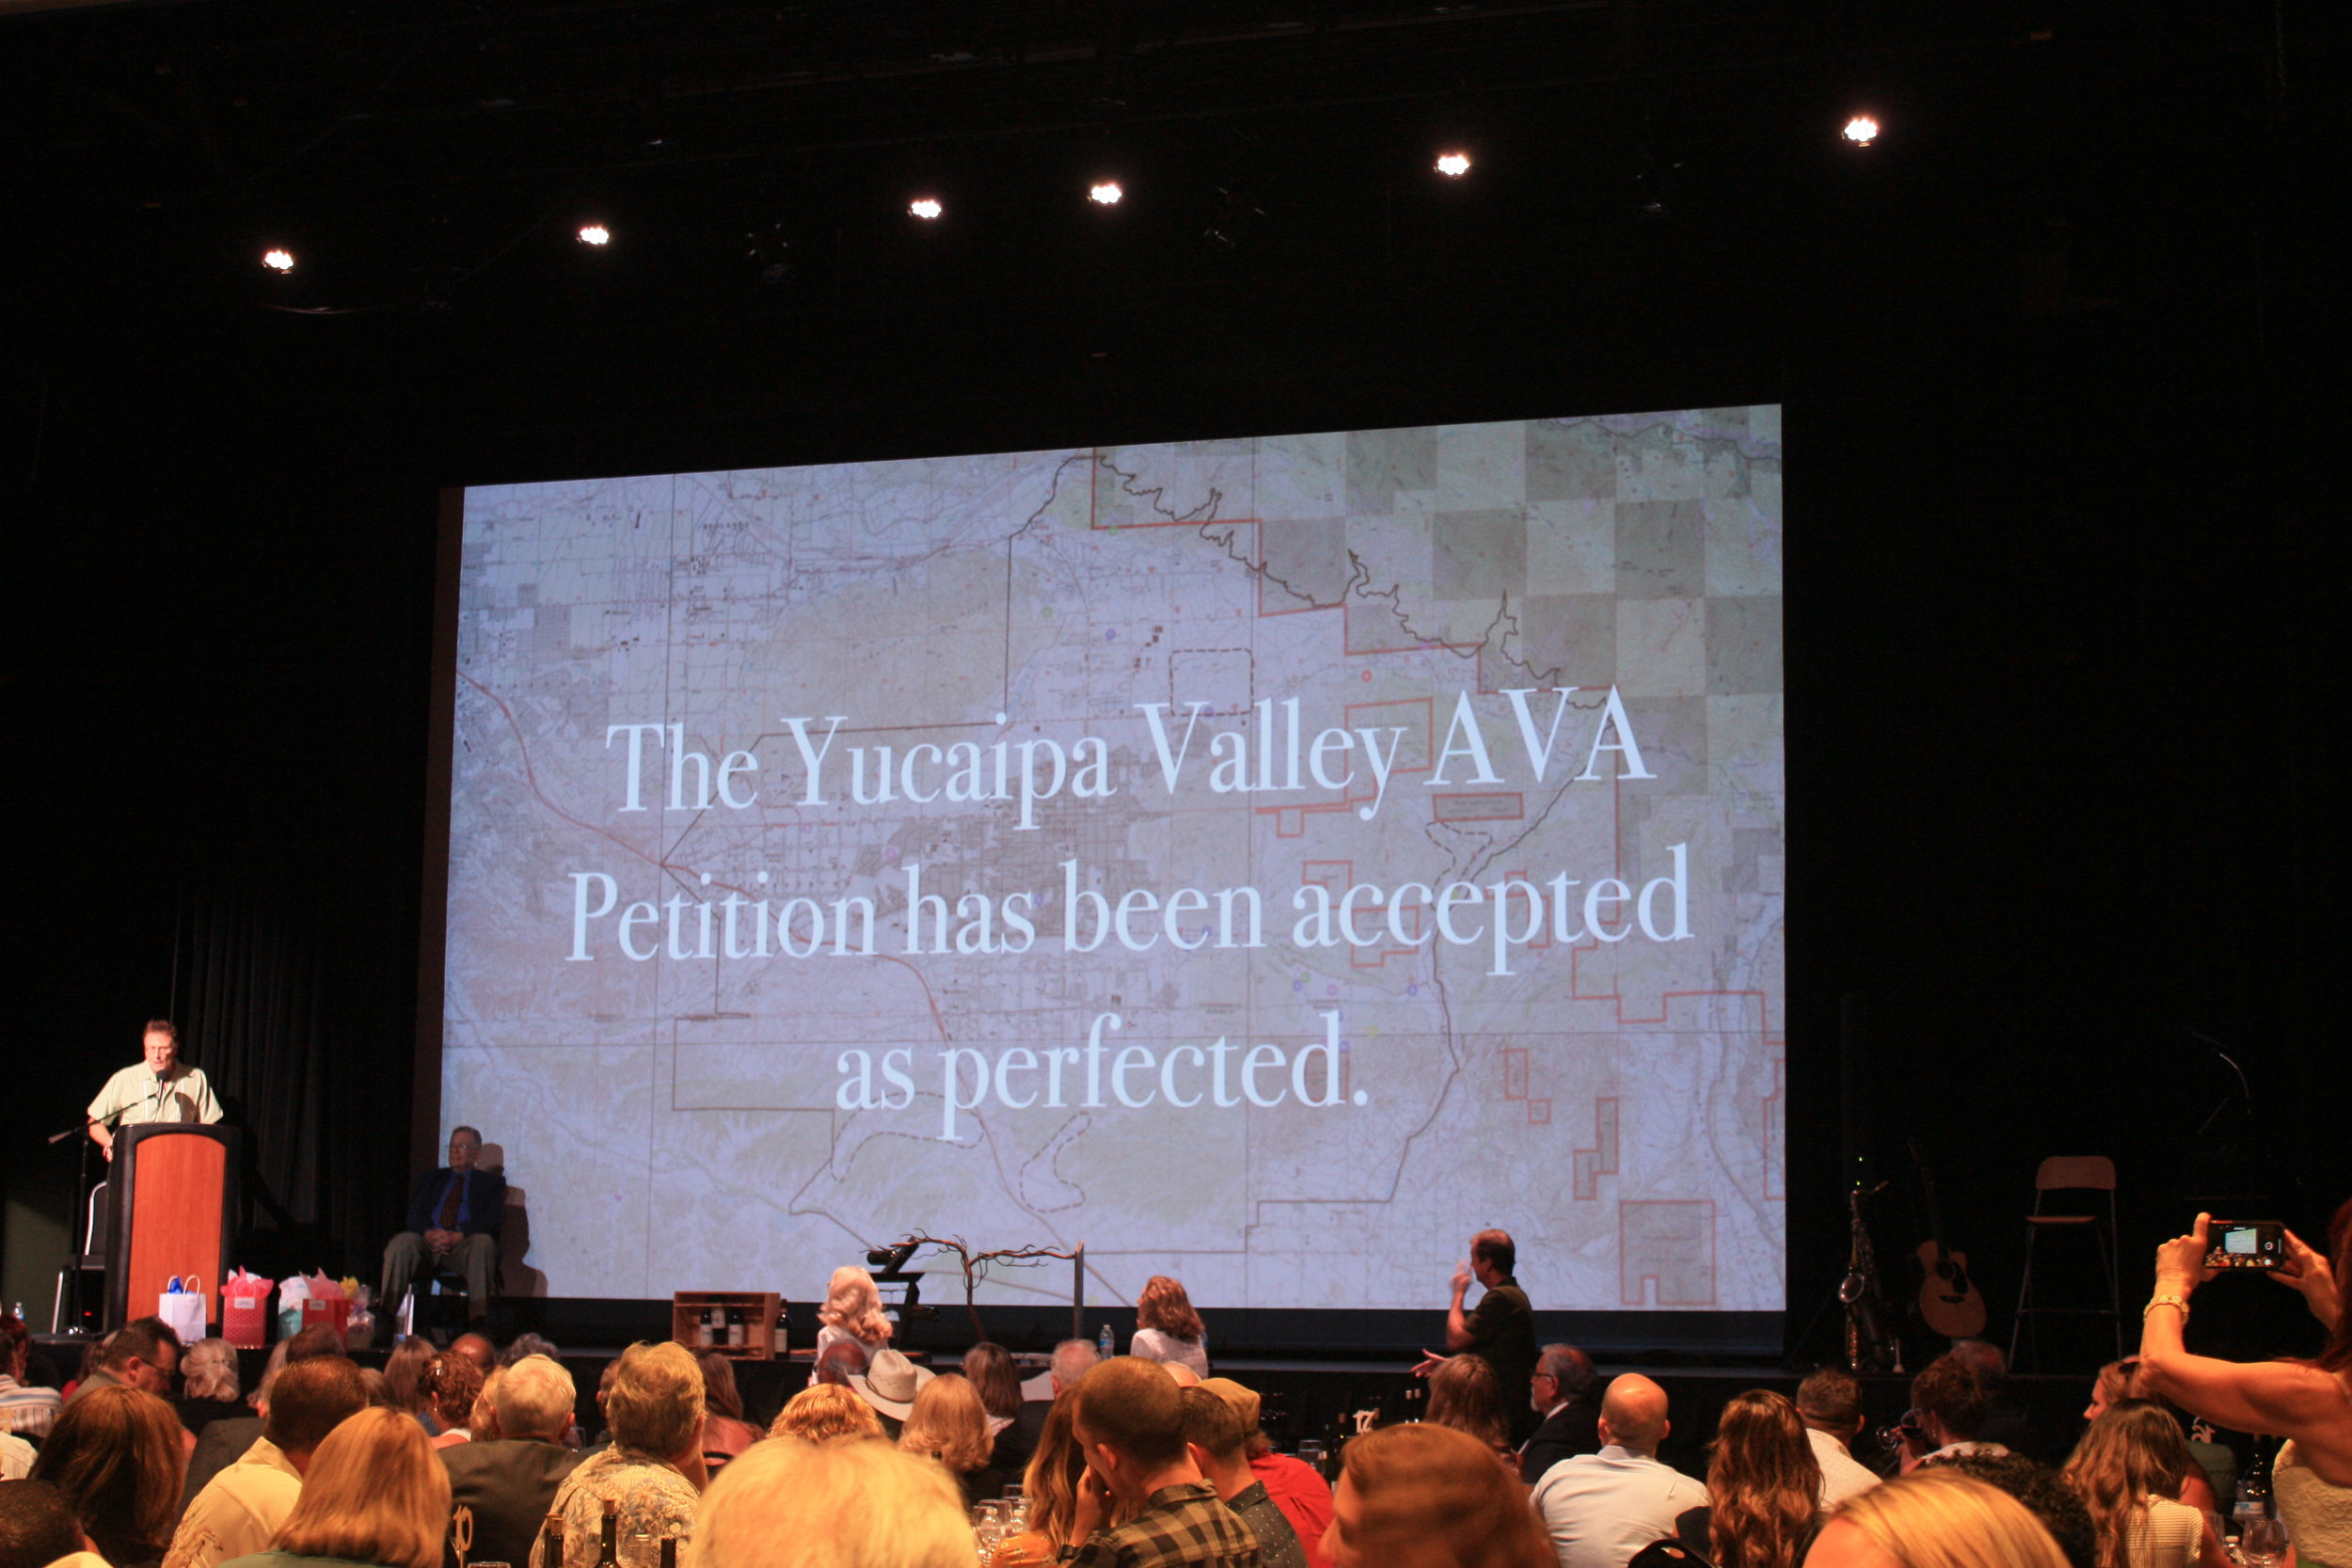 Yucaipa Valley AVA Petition Accepted as Perfected -